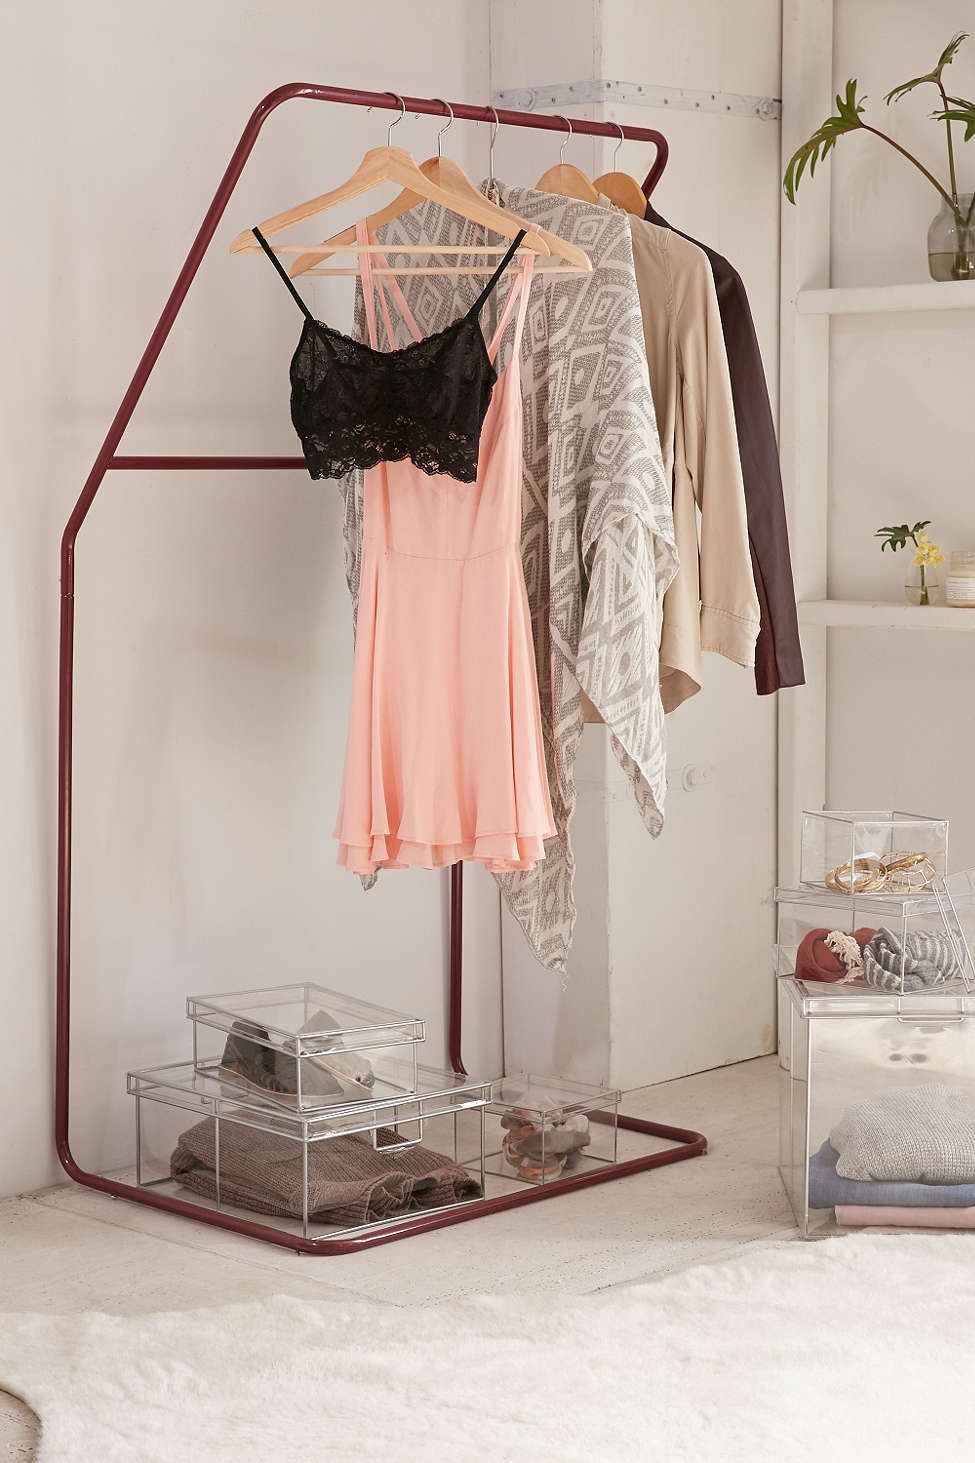 Leaning clothing rack spaces apartments and dorm